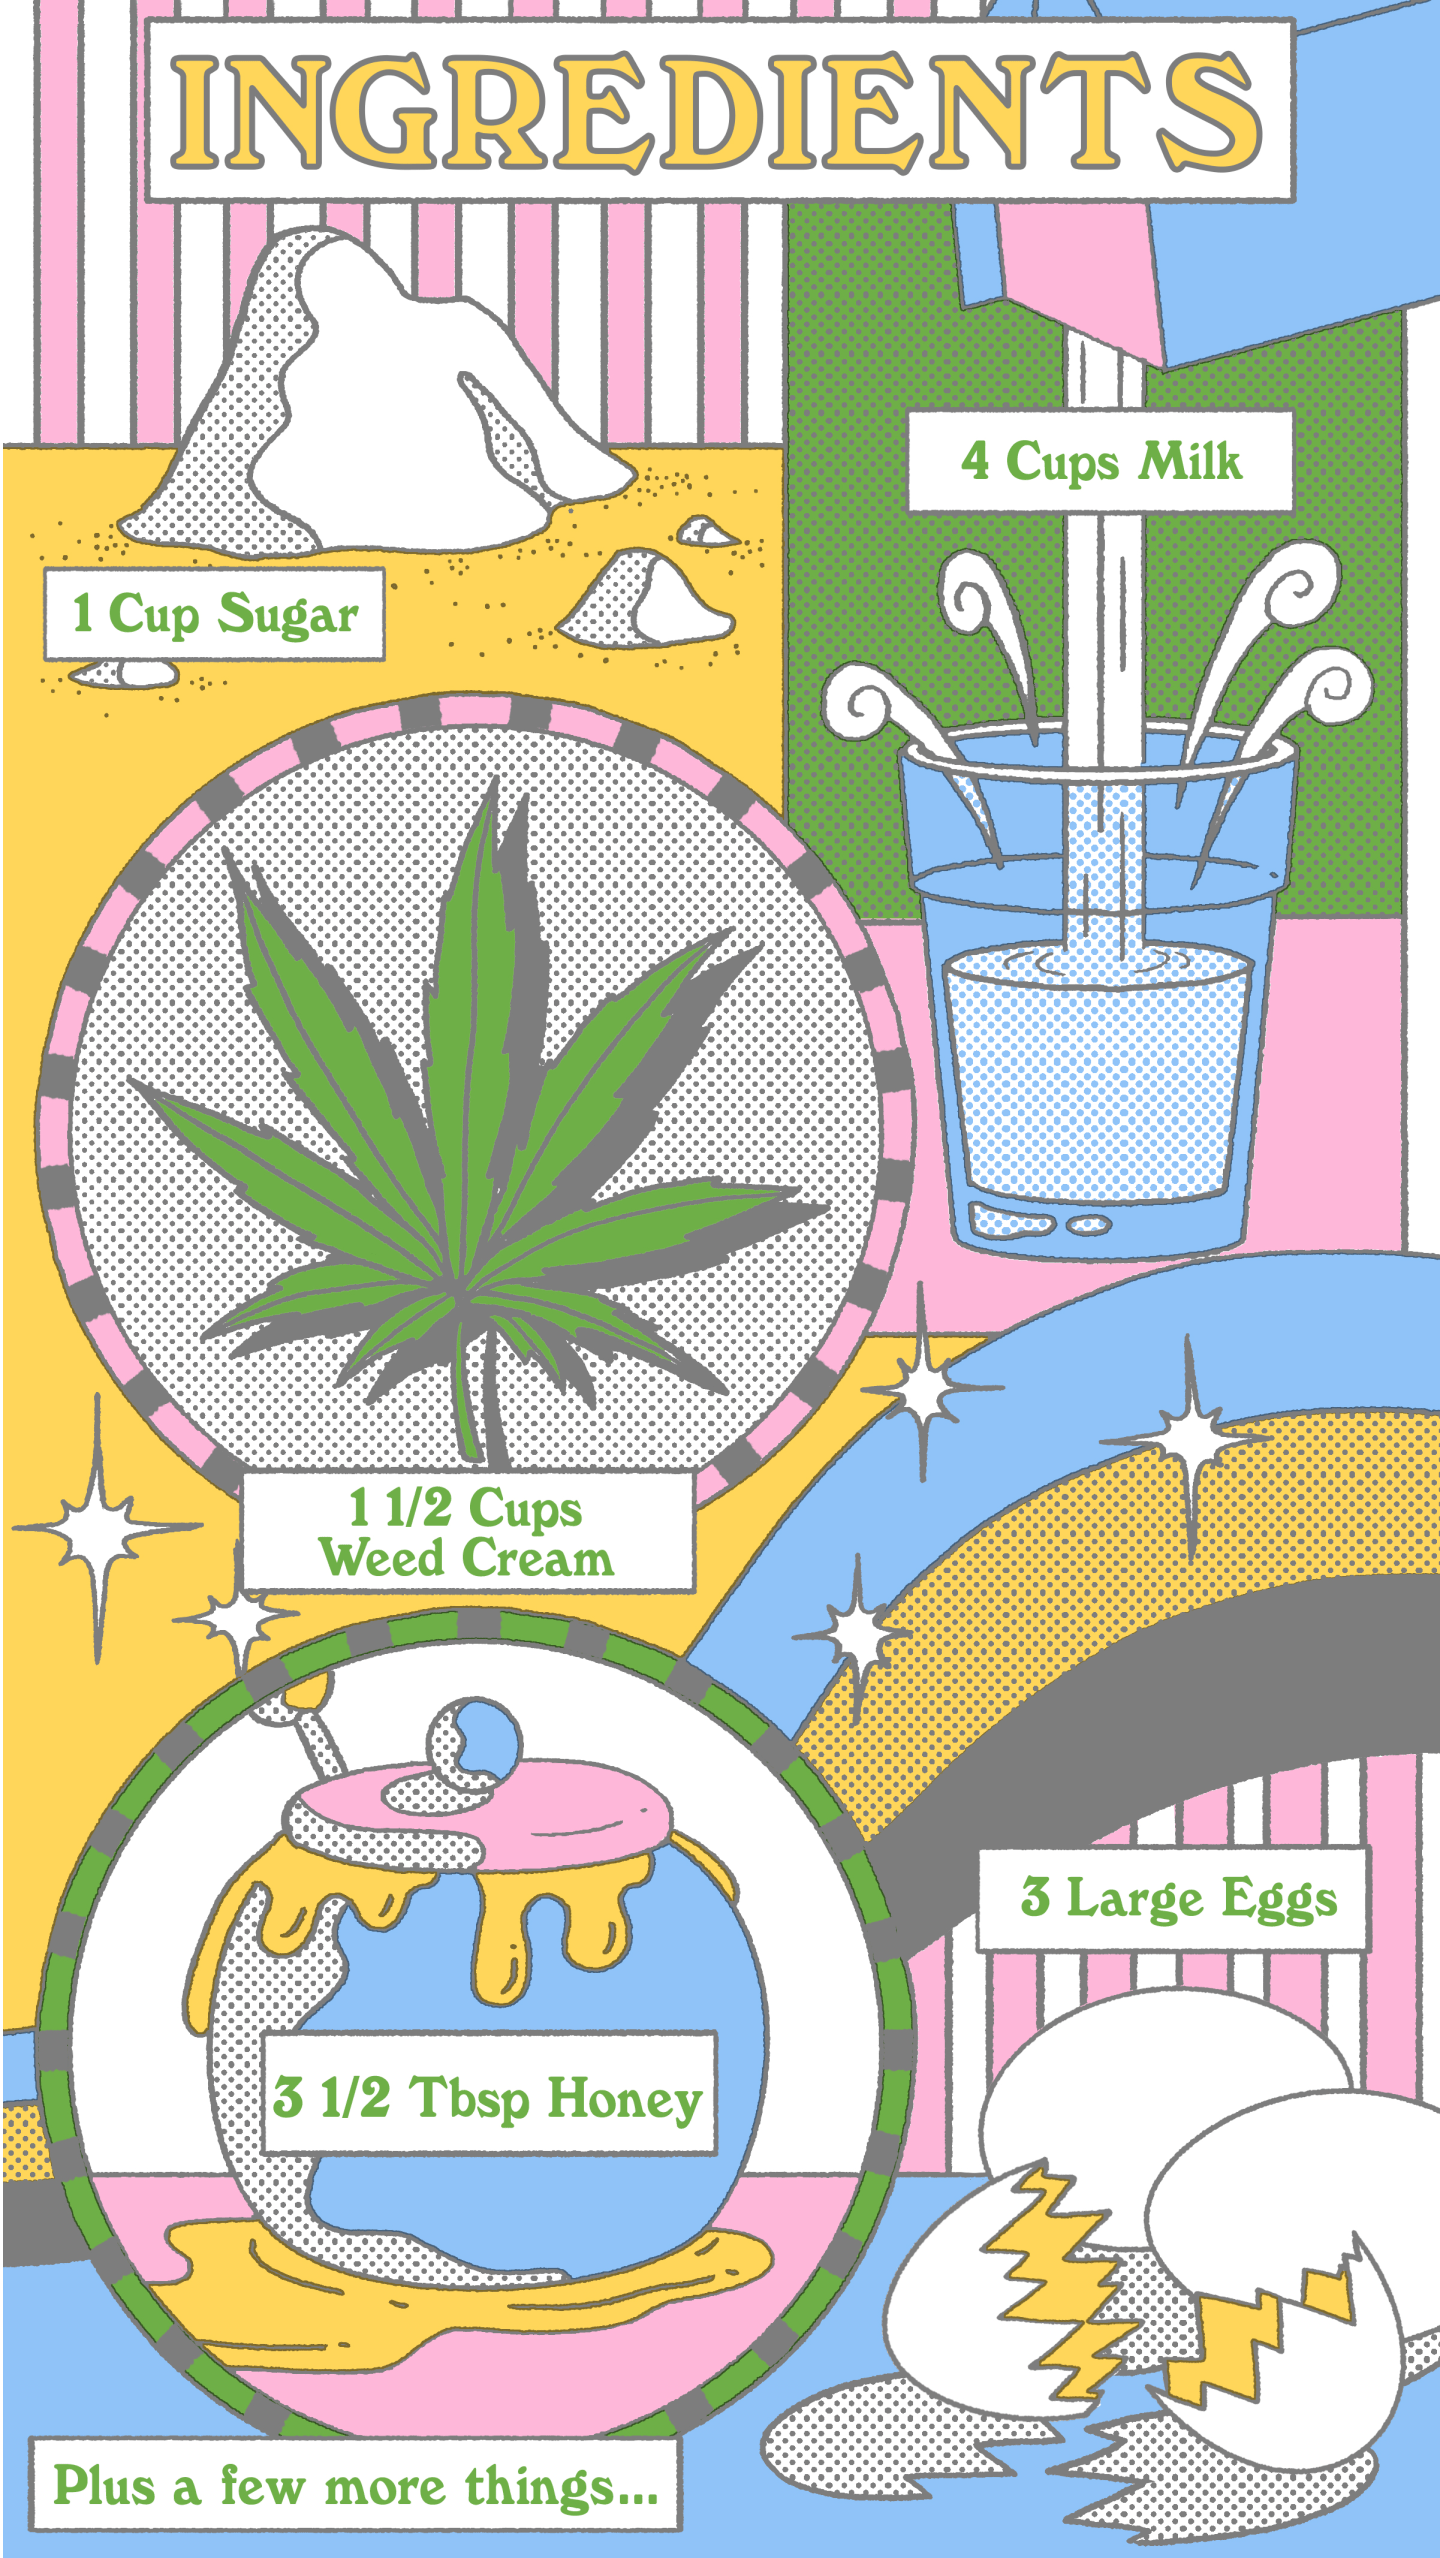 This is the easiest way to make weed ice cream